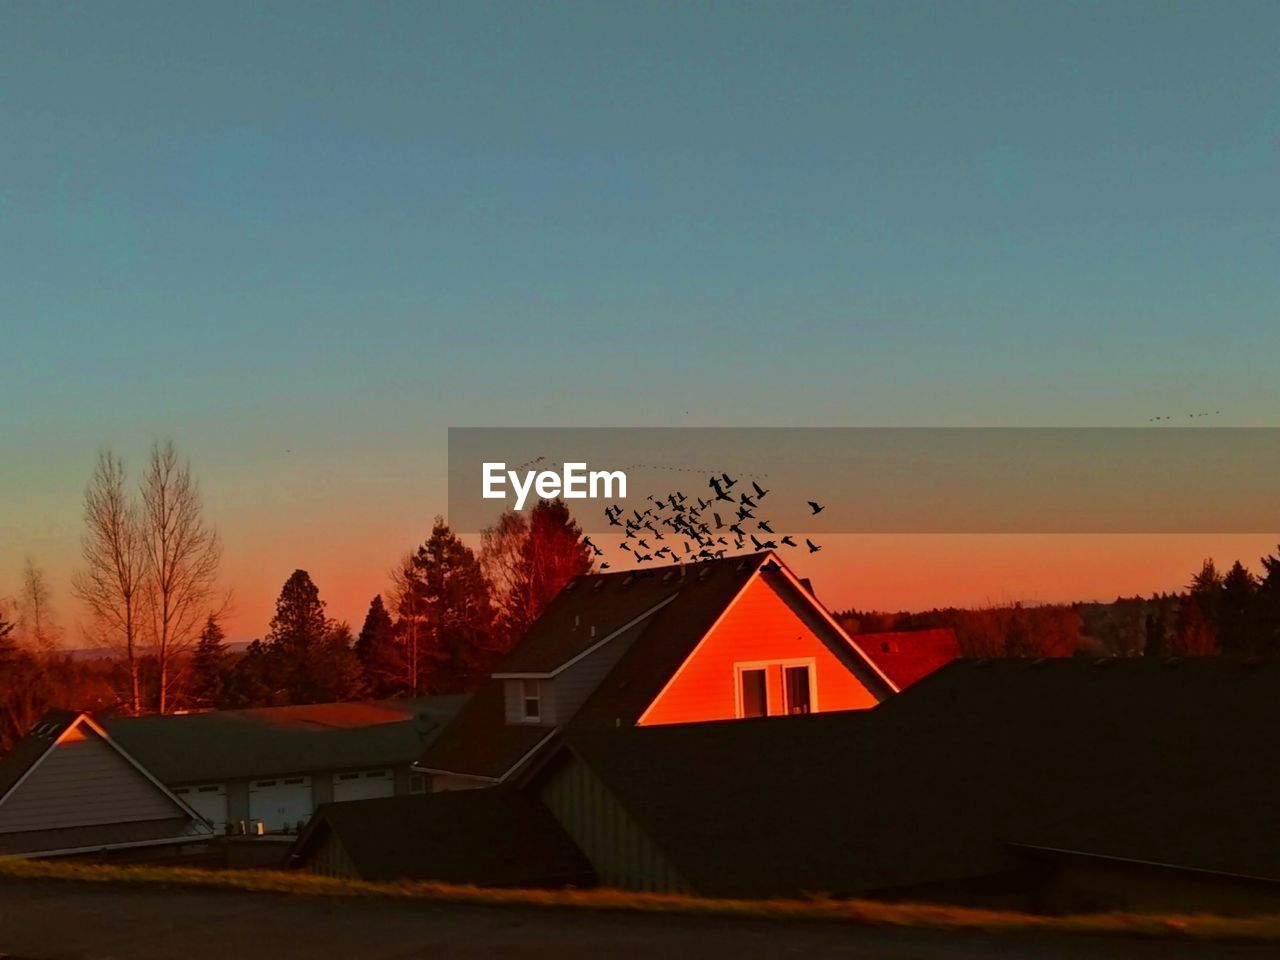 sky, architecture, sunset, built structure, building exterior, tree, house, building, copy space, no people, orange color, nature, plant, beauty in nature, scenics - nature, residential district, silhouette, landscape, outdoors, clear sky, cottage